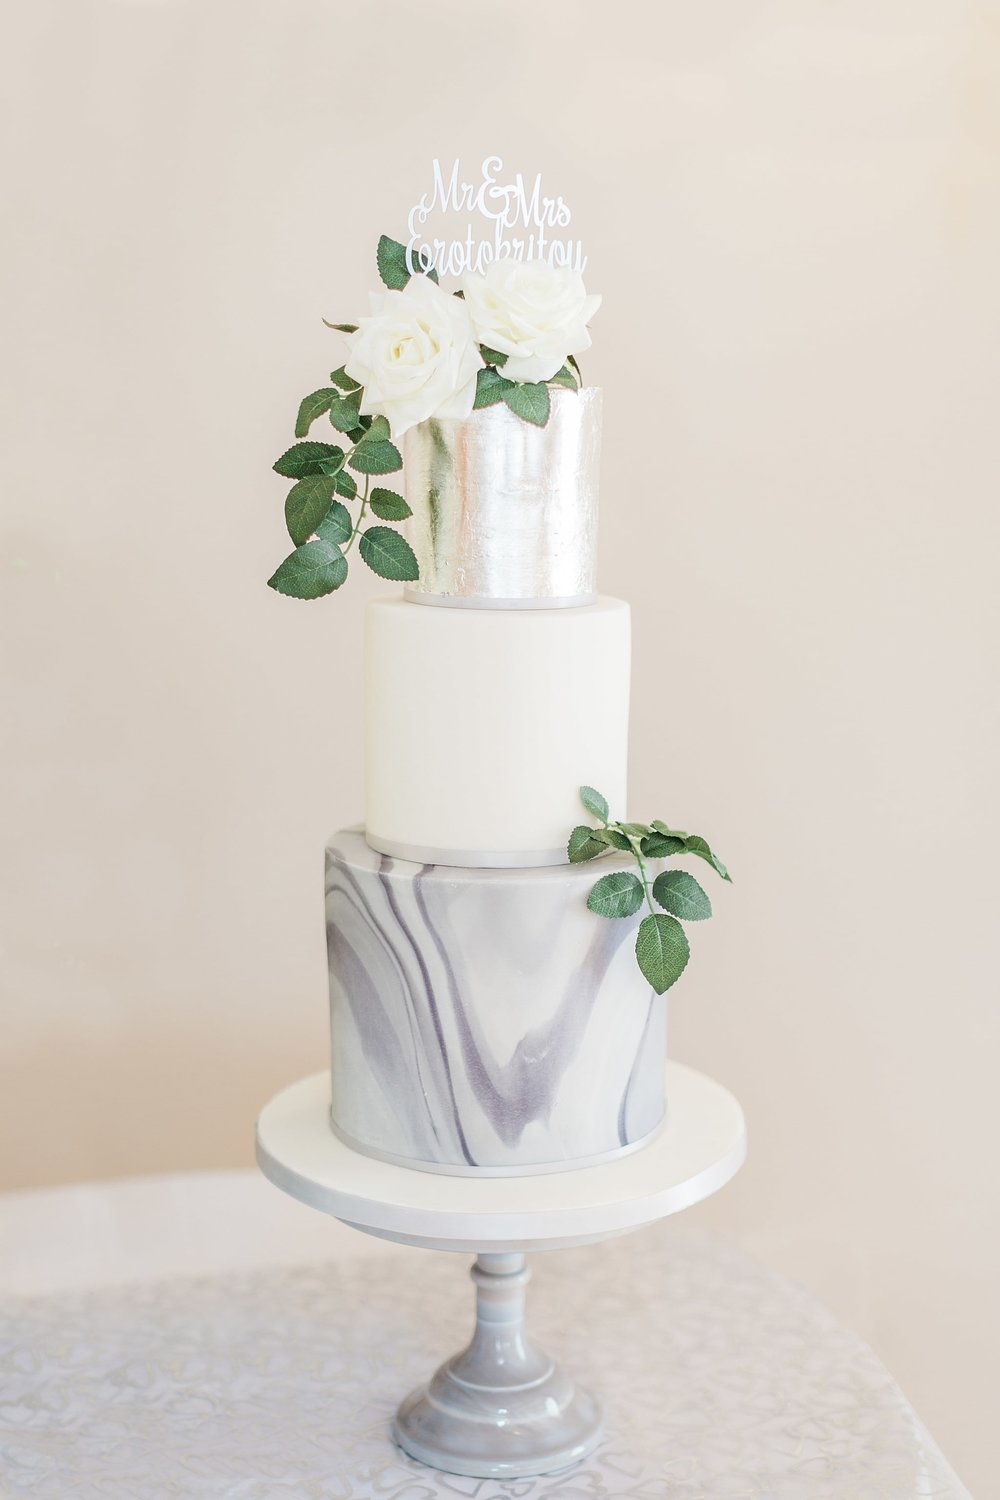 Modern wedding cake marble grey and white, and silver leaf dressed with white flowers and greenery. Cake by Hertfordshire wedding cake company Meadowsweet Cakes, photography by Sung Blue Photo